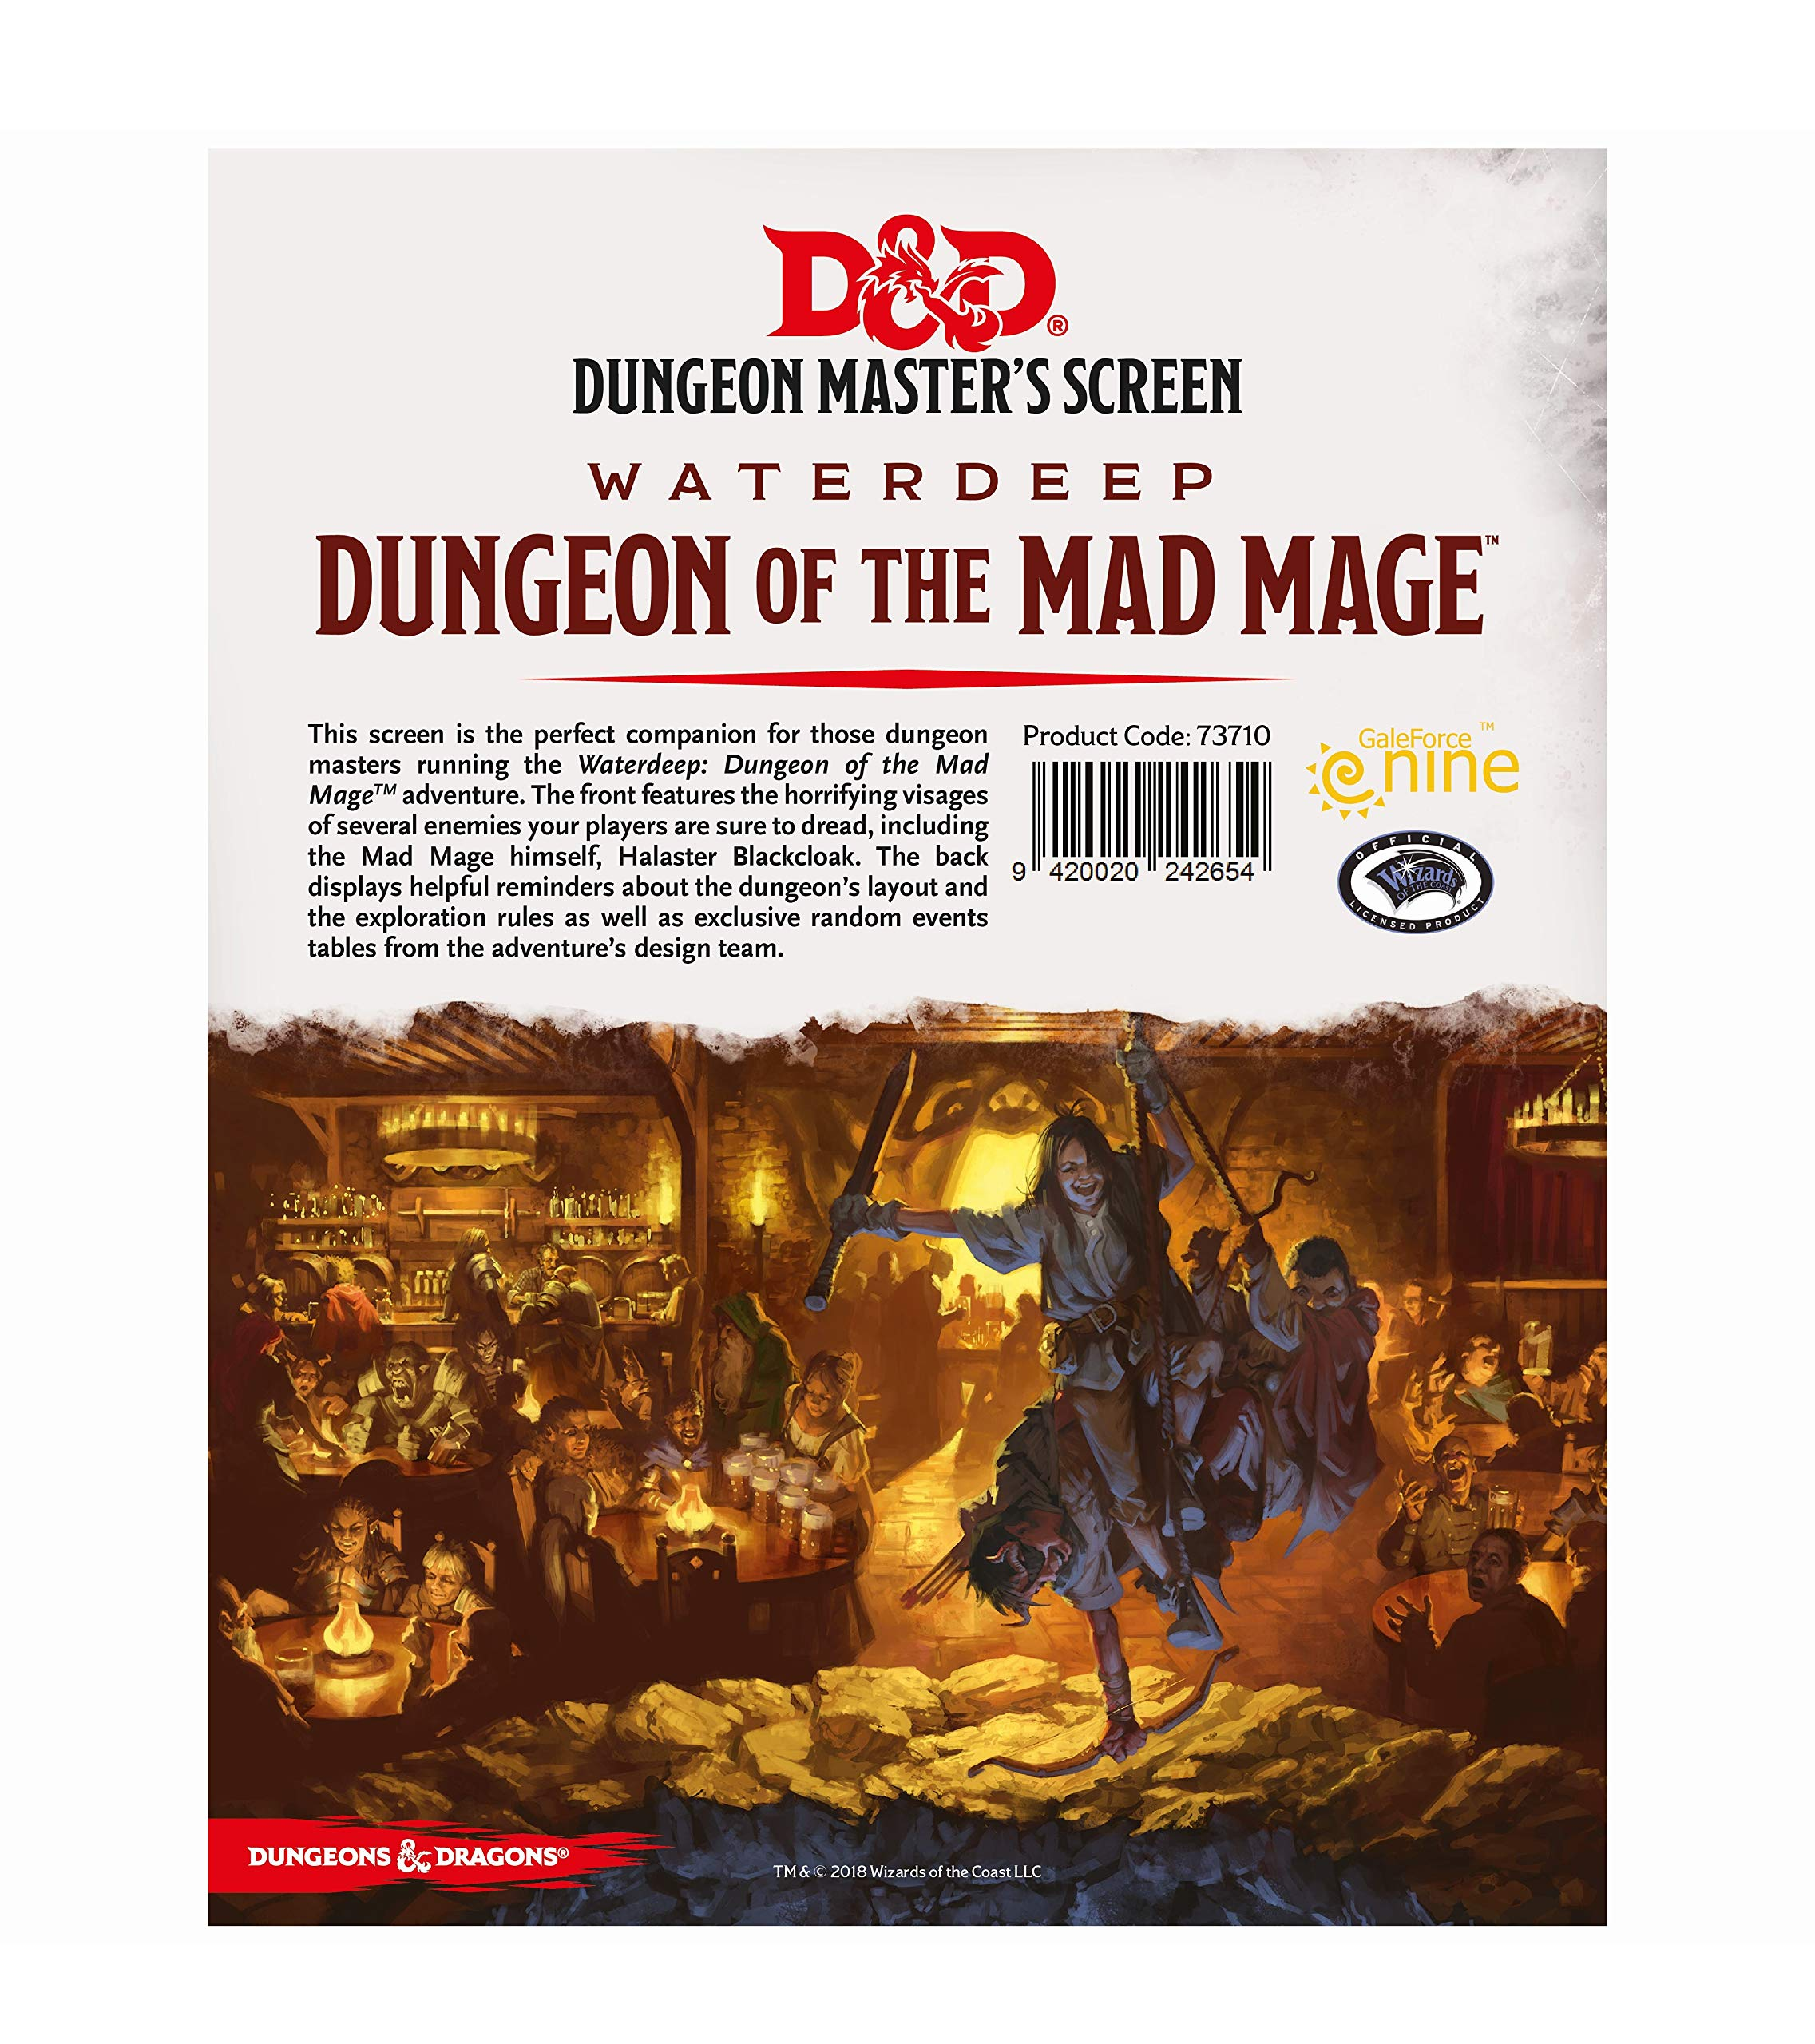 Dungeons & Dragons - Dungeon of The Mad Mage DM Screen by Gale Force Nine